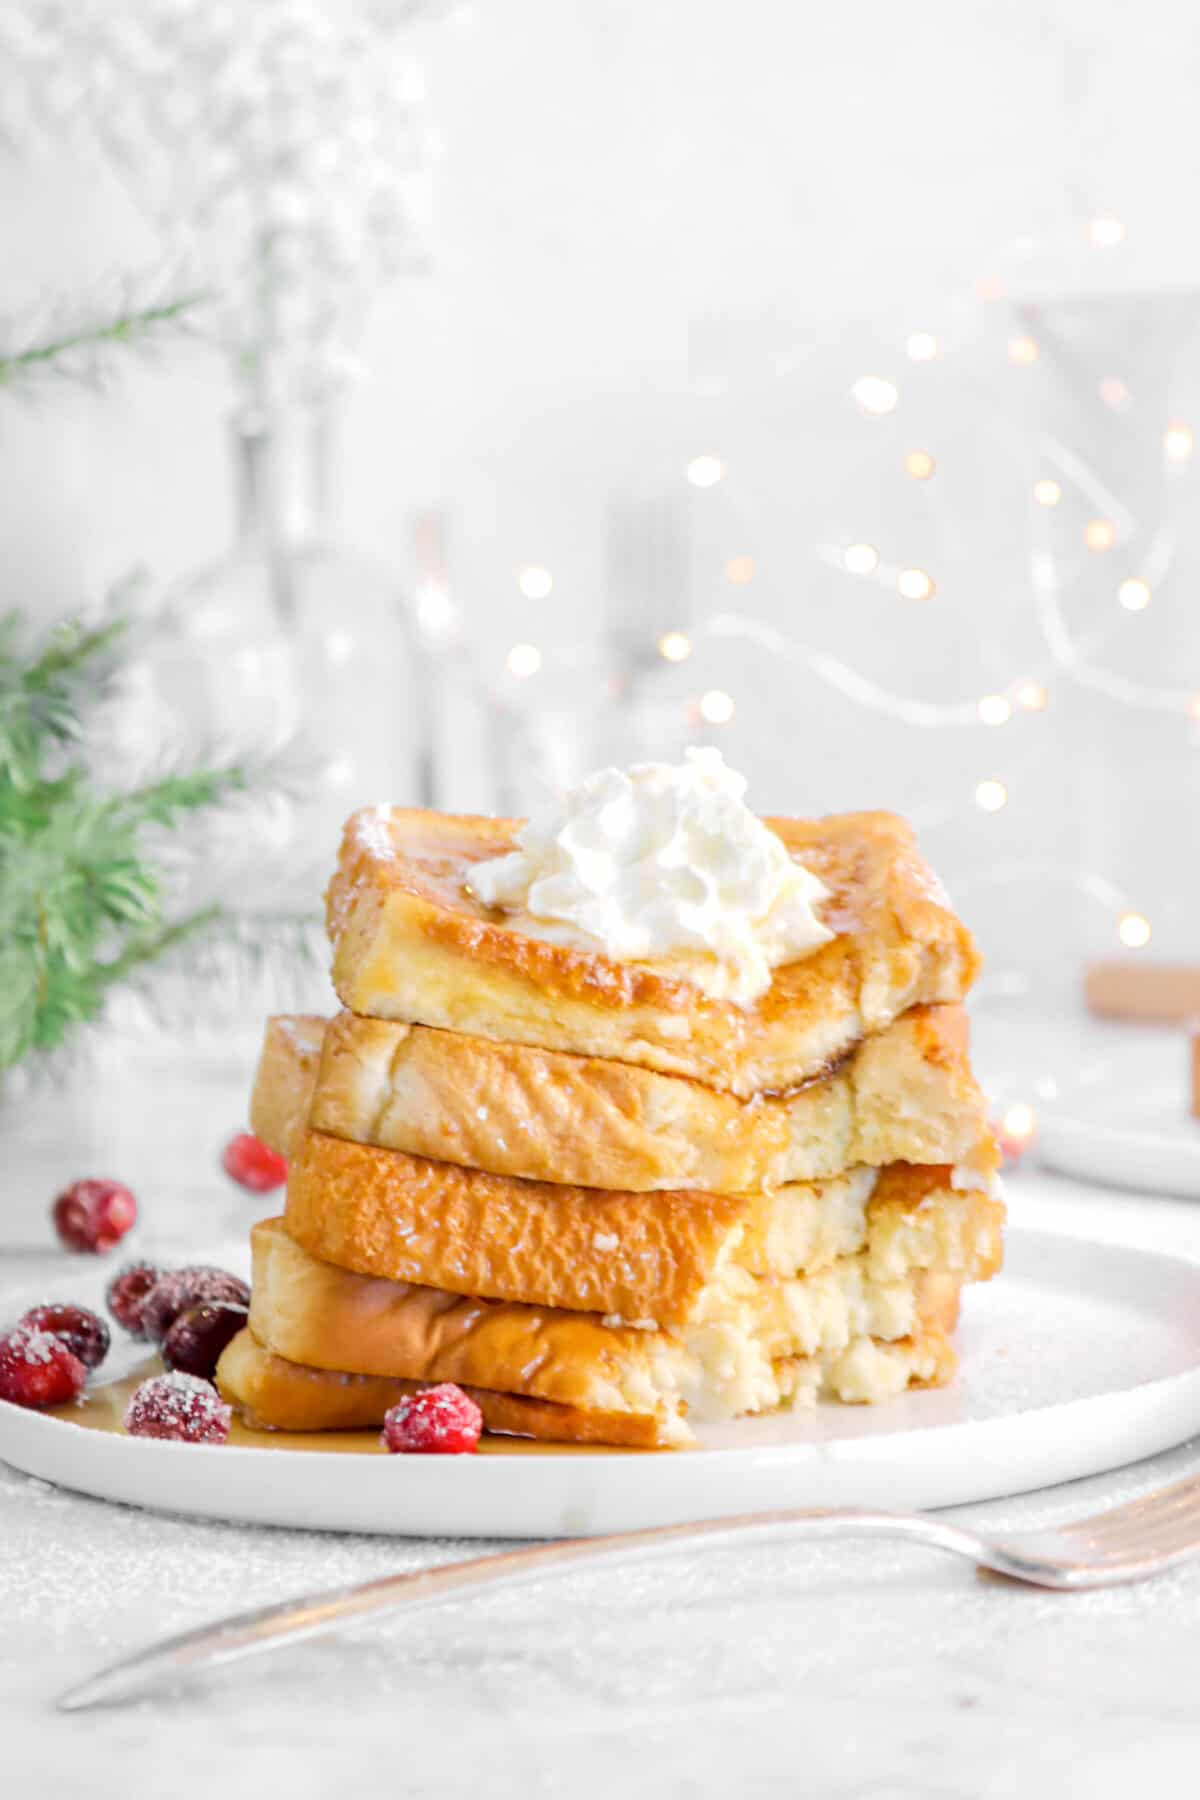 french toast on a white plate with fairy lights and a bite taken out